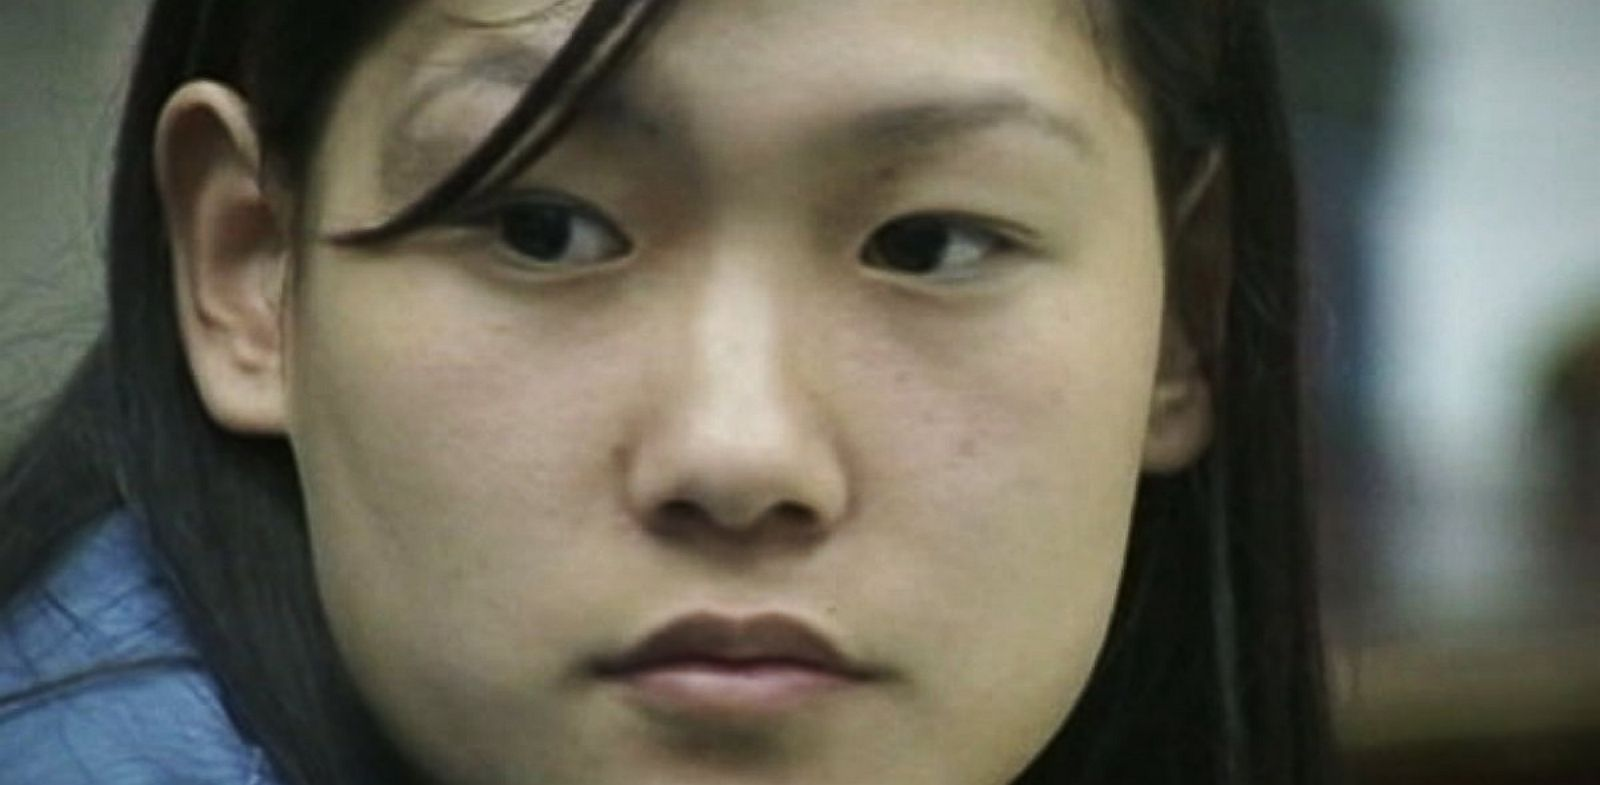 PHOTO: 22-year-old Barbara Wu, a UC Riverside student,has been charged in plot to kill former boyfriends.